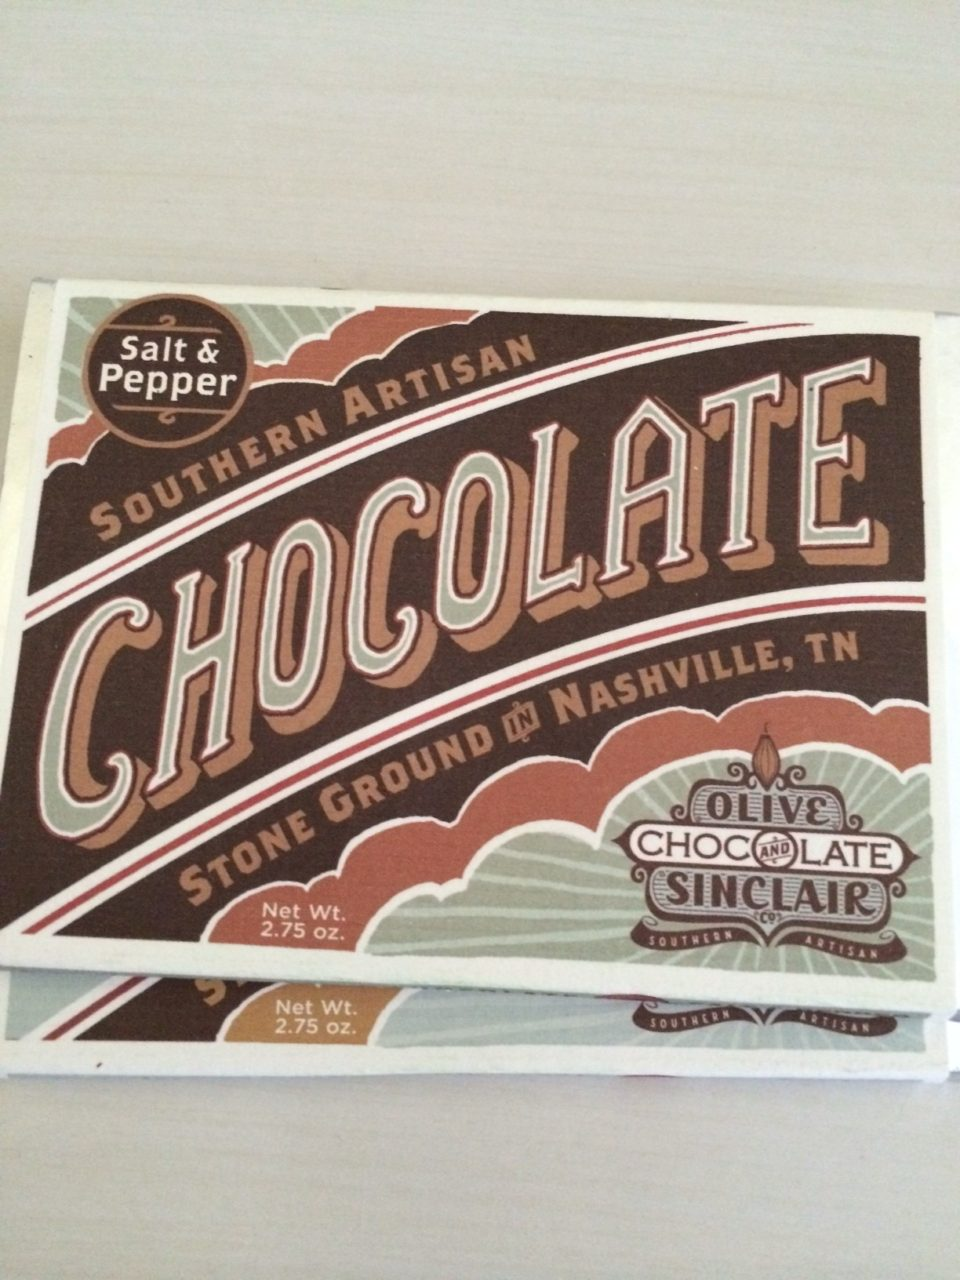 Nashville made chocolate